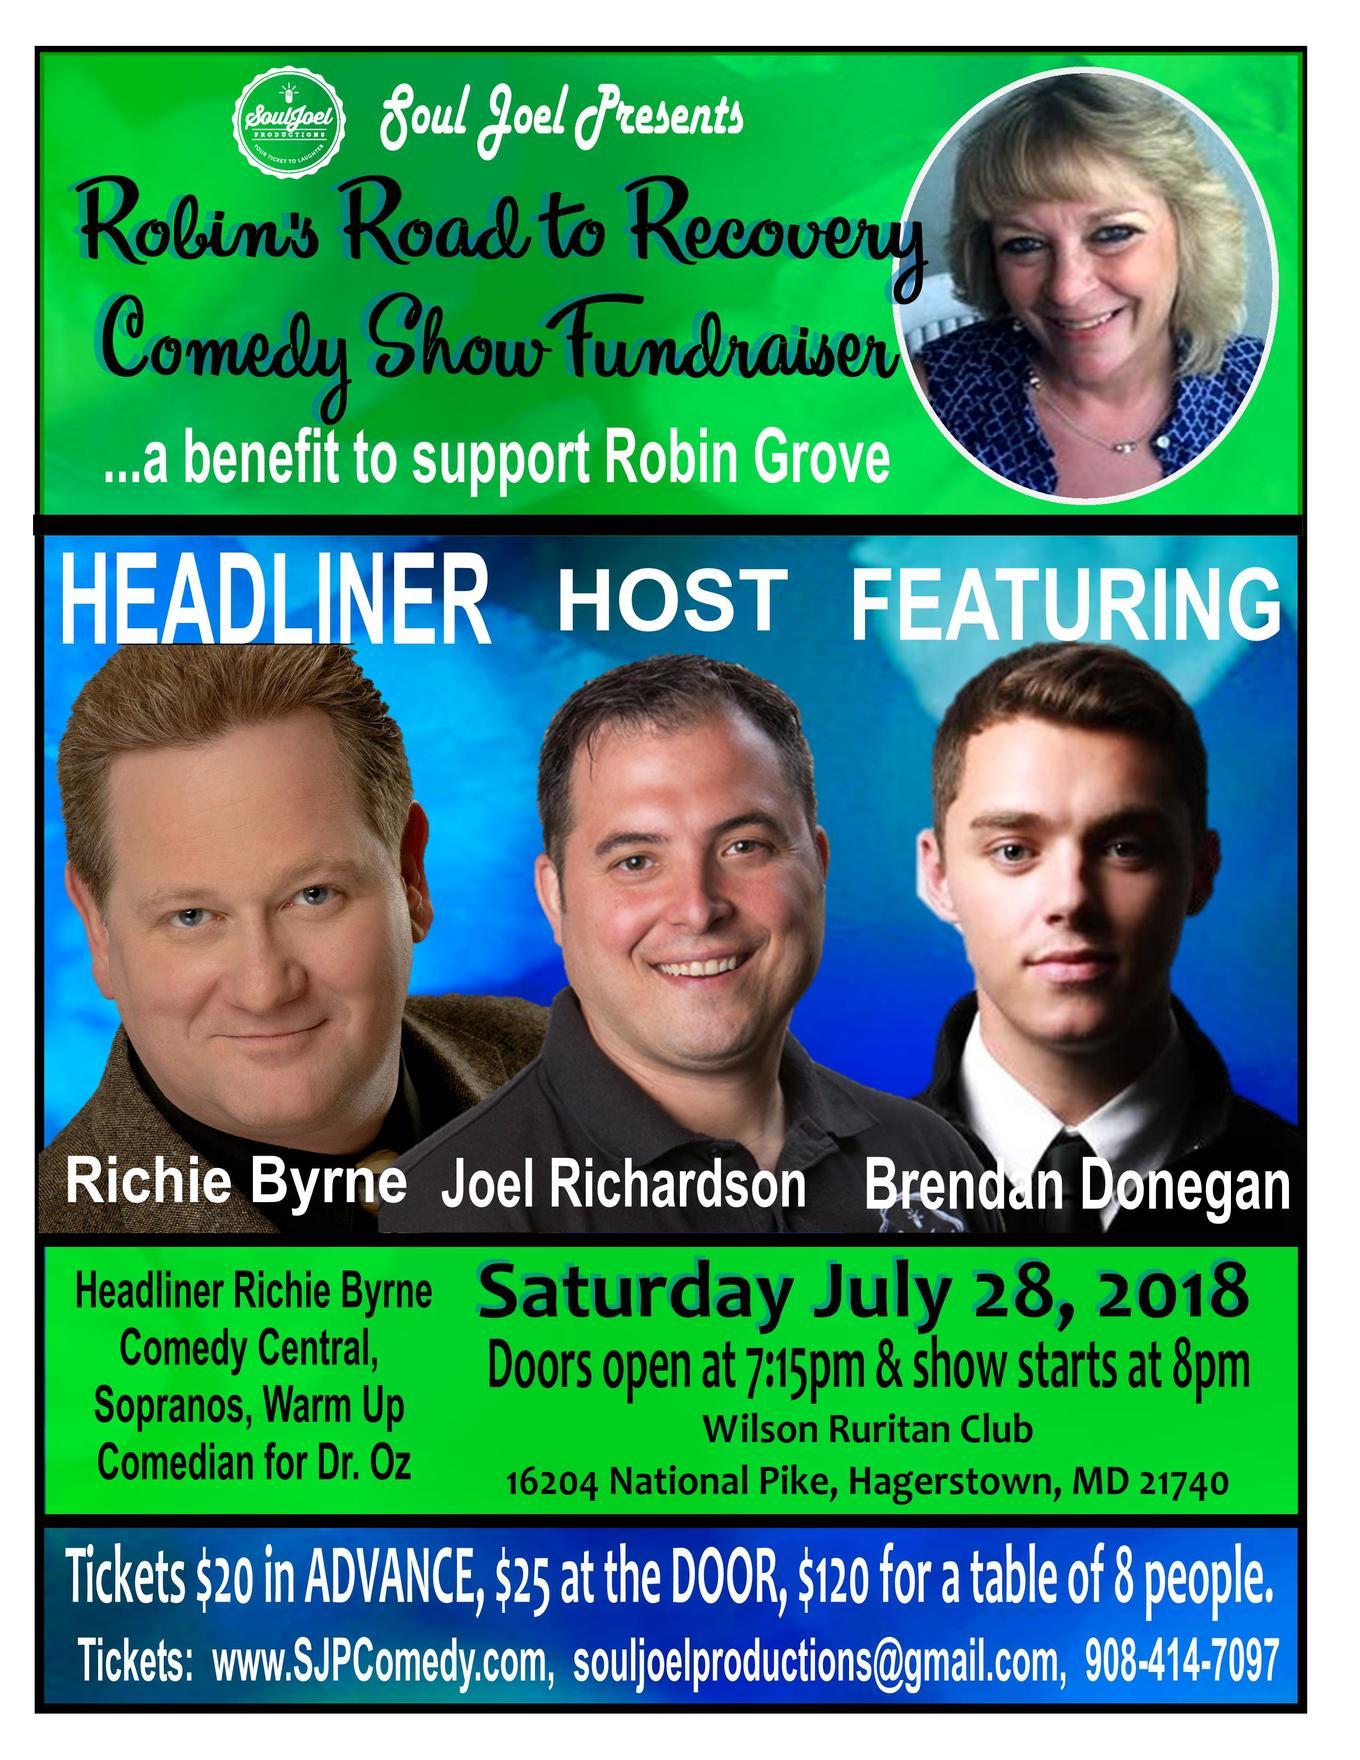 Robin's Road To Recovery Comedy Show Fundraiser - Tickets - Wilson's